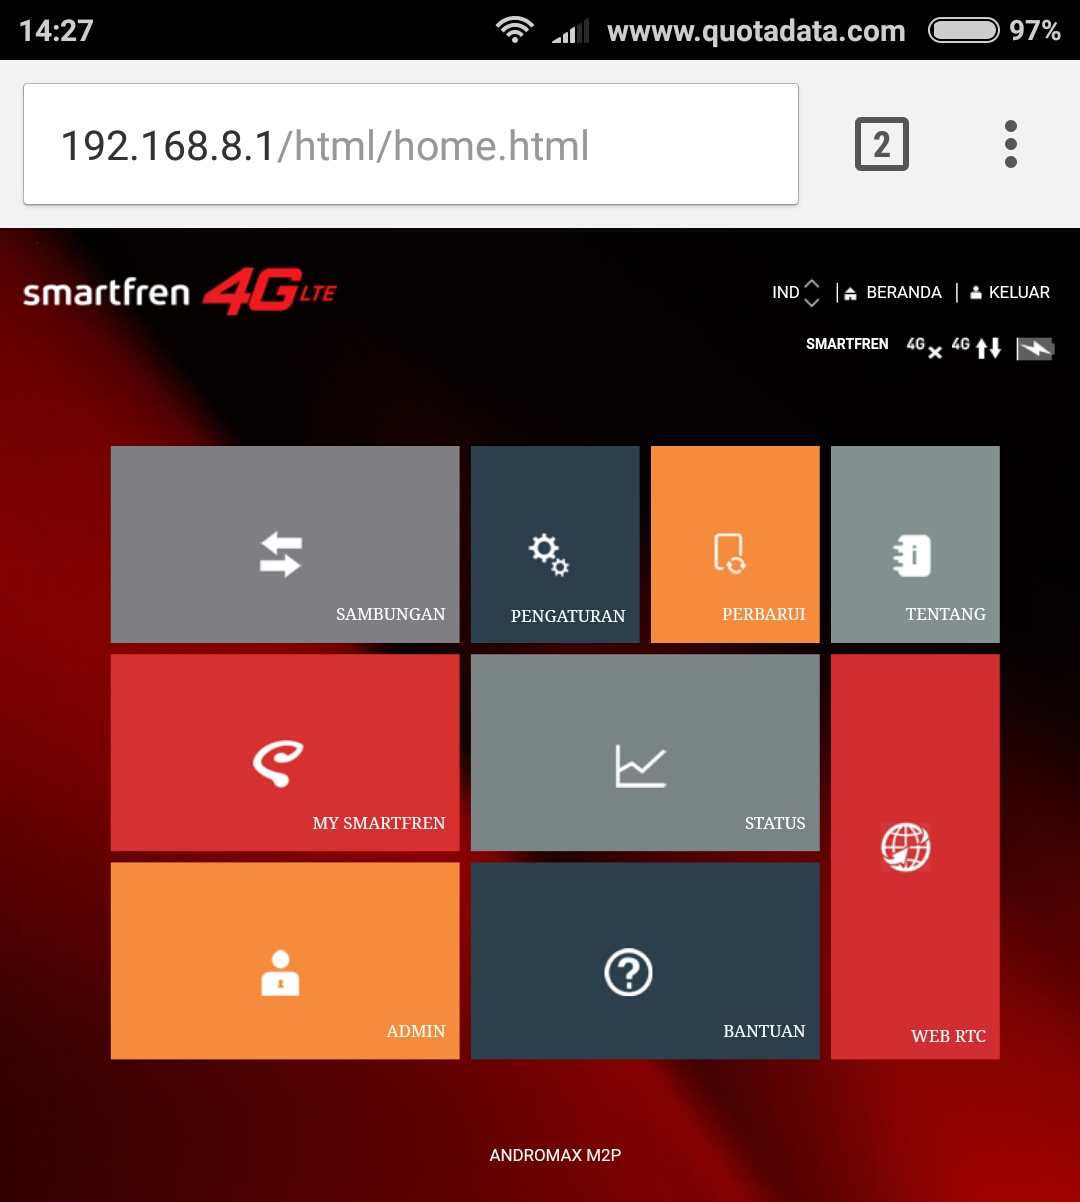 Image Result For Paket Internet Andromax My